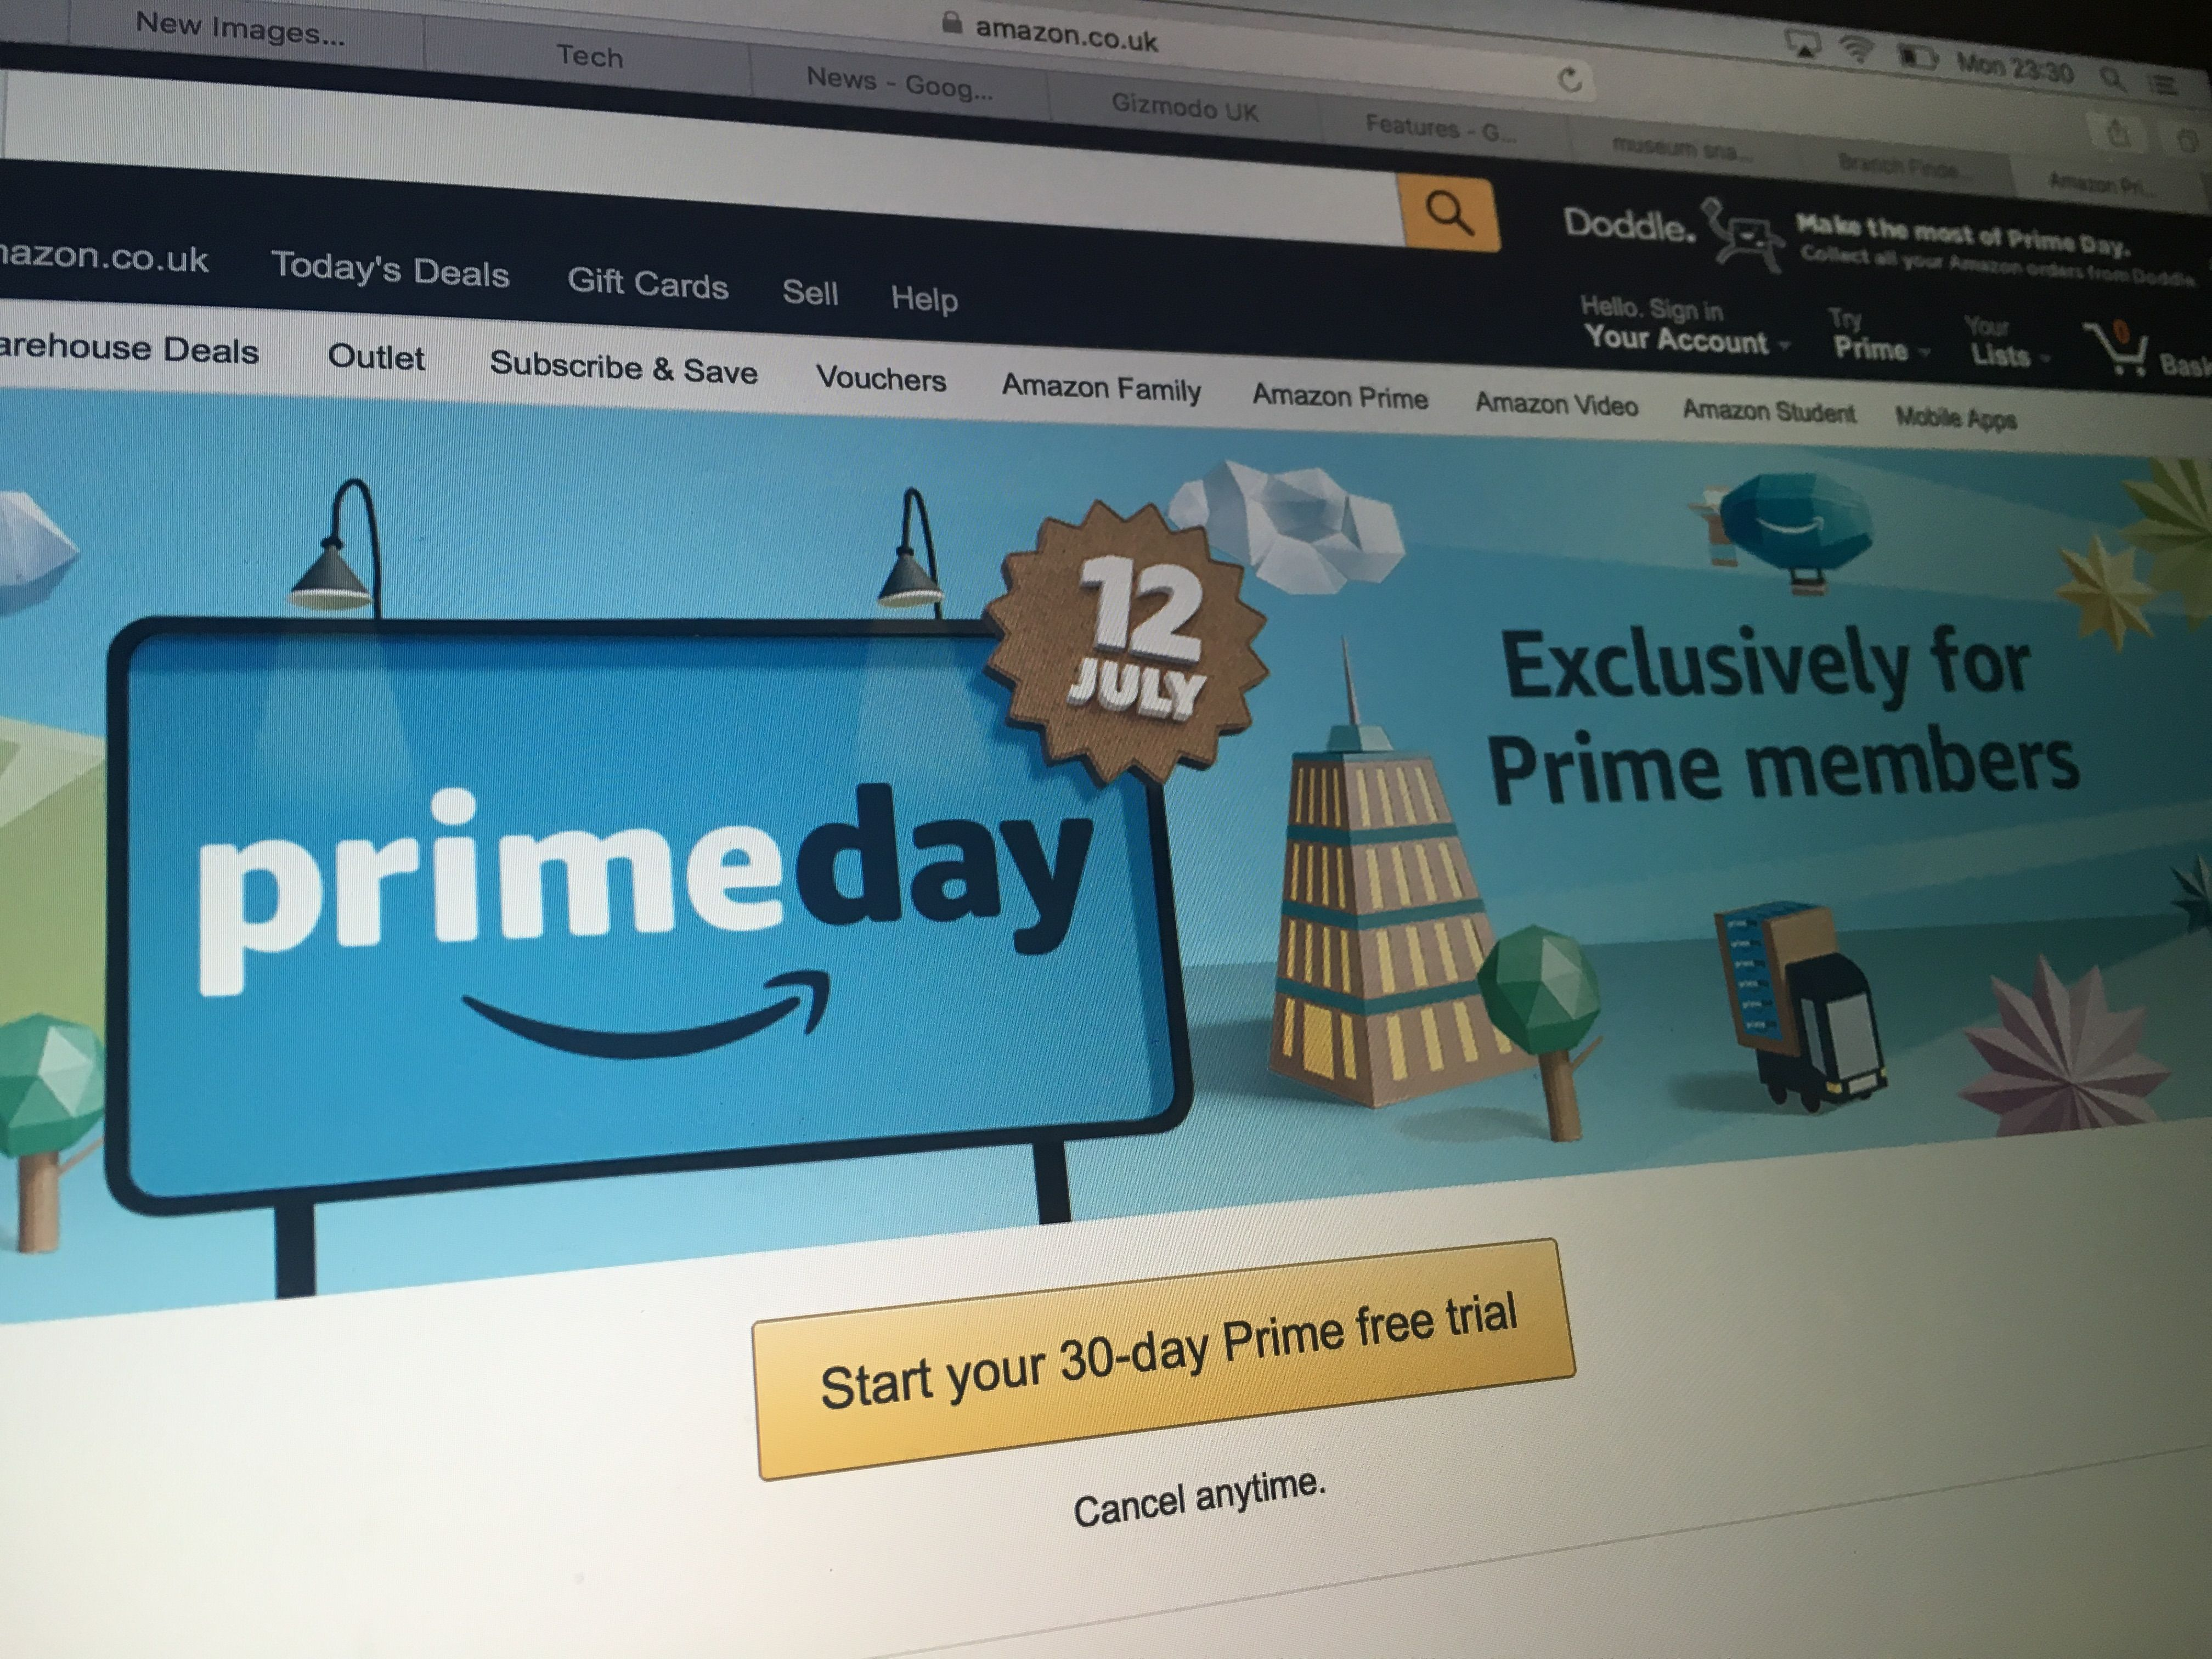 Best Amazon Prime Day Deals 2016: Your timeline for how to get the